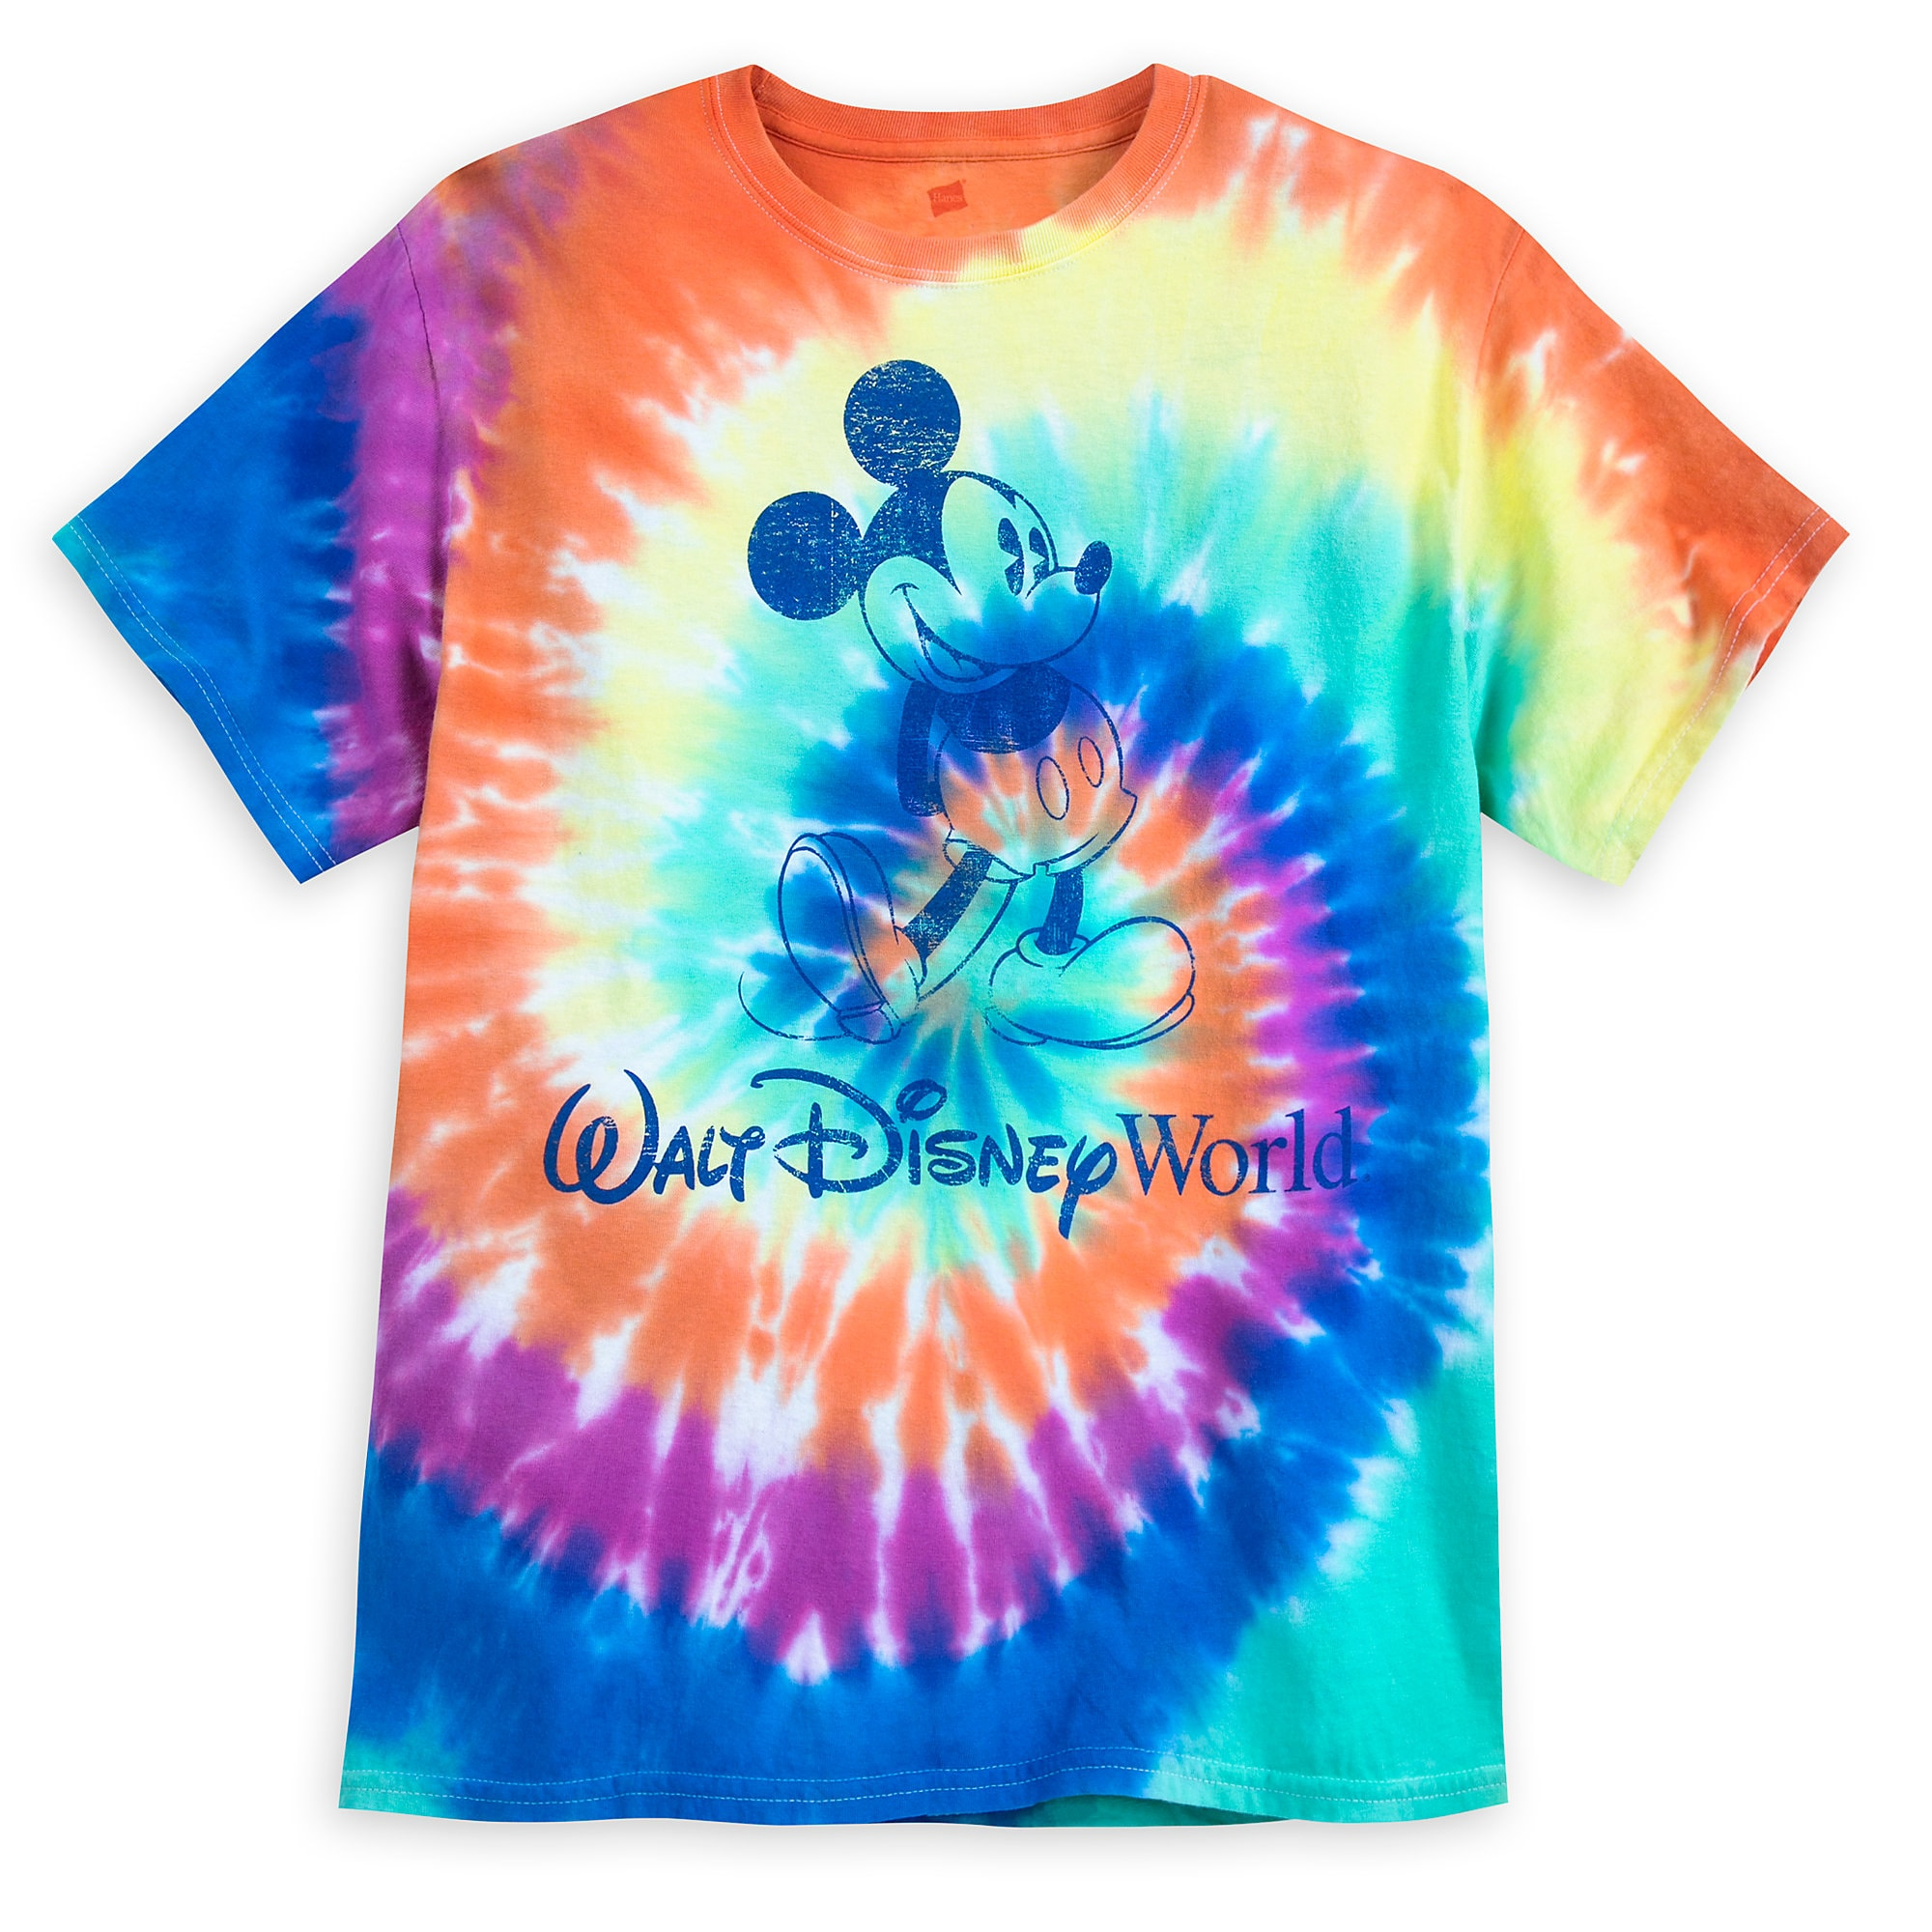 How to tie a dye t shirt